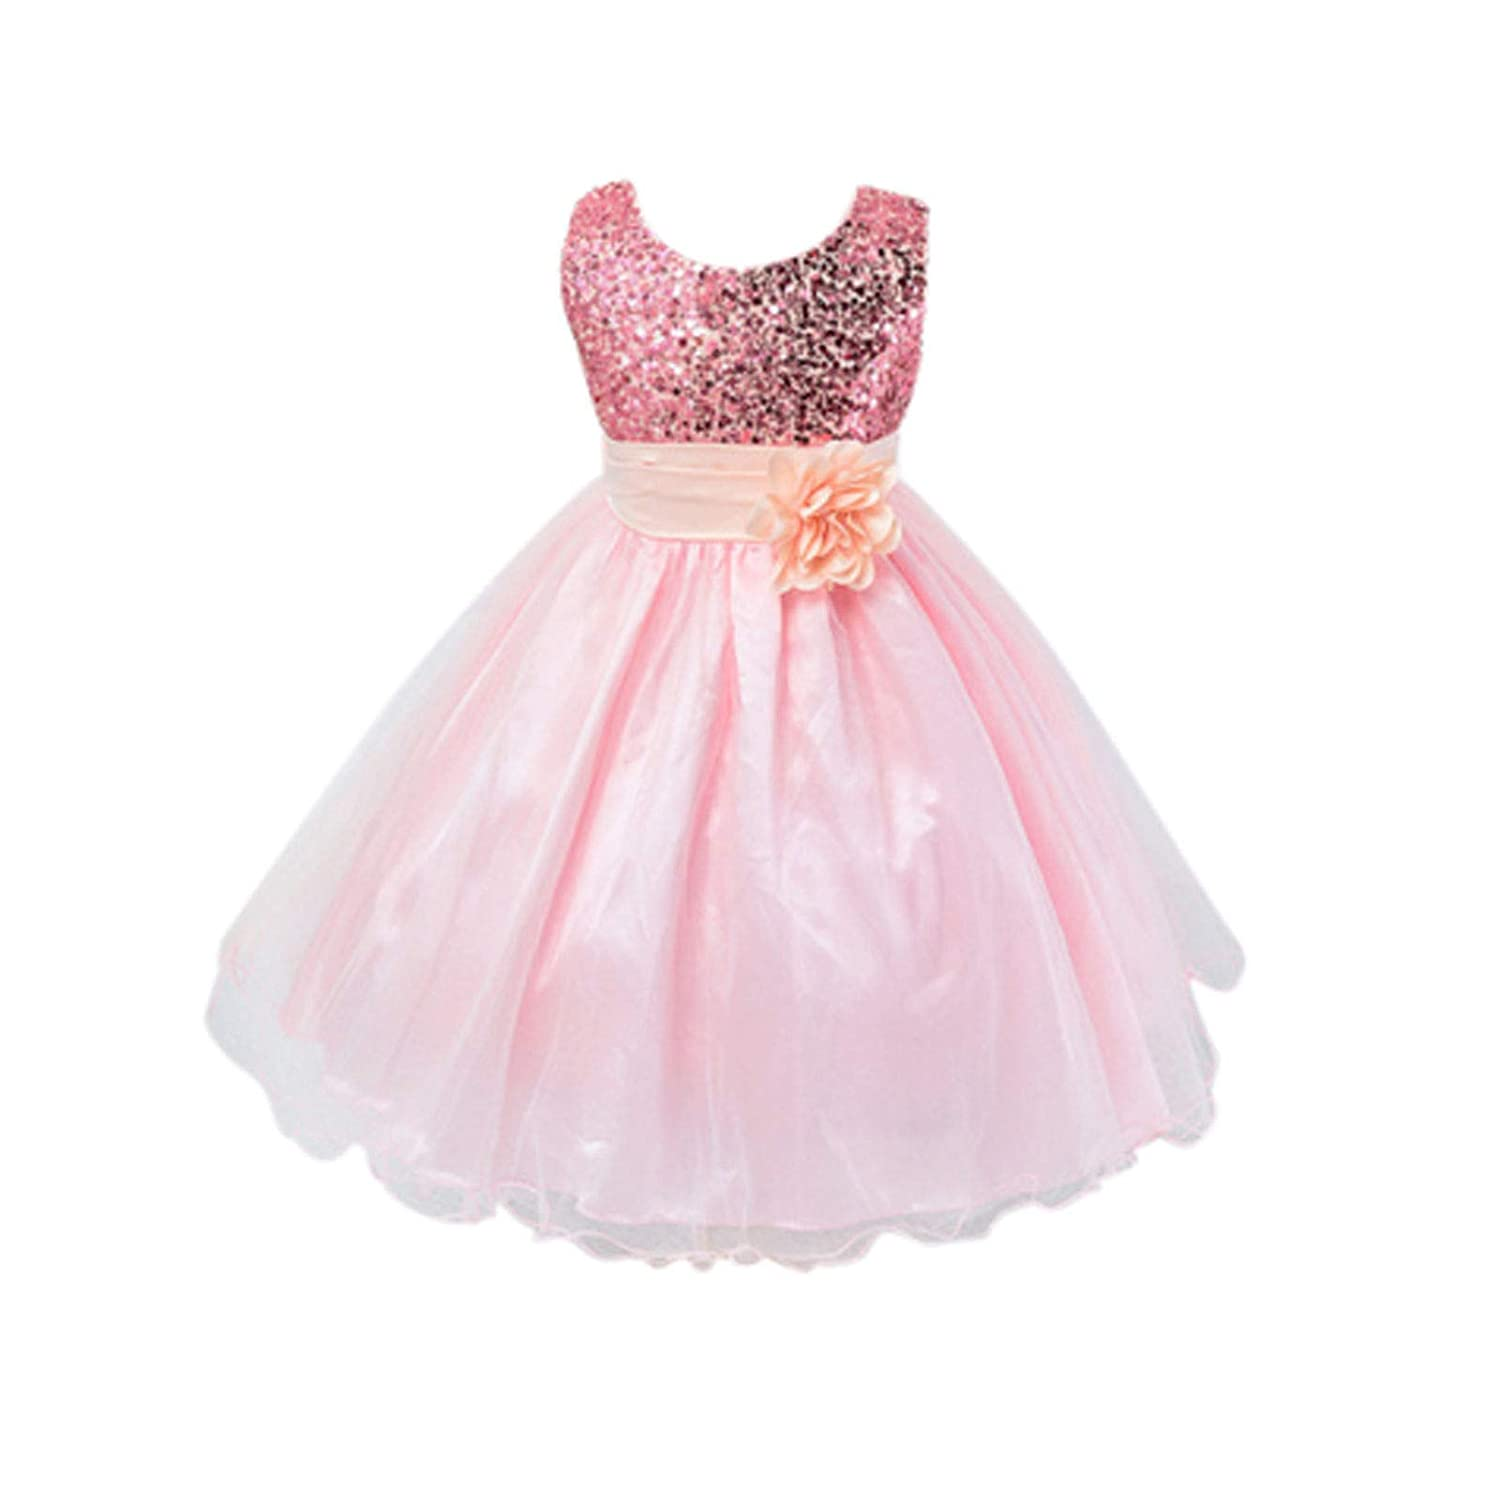 db1c12ff0d Live It Style It Girls Bridesmaid Flower Dress Sequinned Formal Wedding  Party Christening Children Clothing Lace Dress Princess Girl Dresses Kid  Baby ...